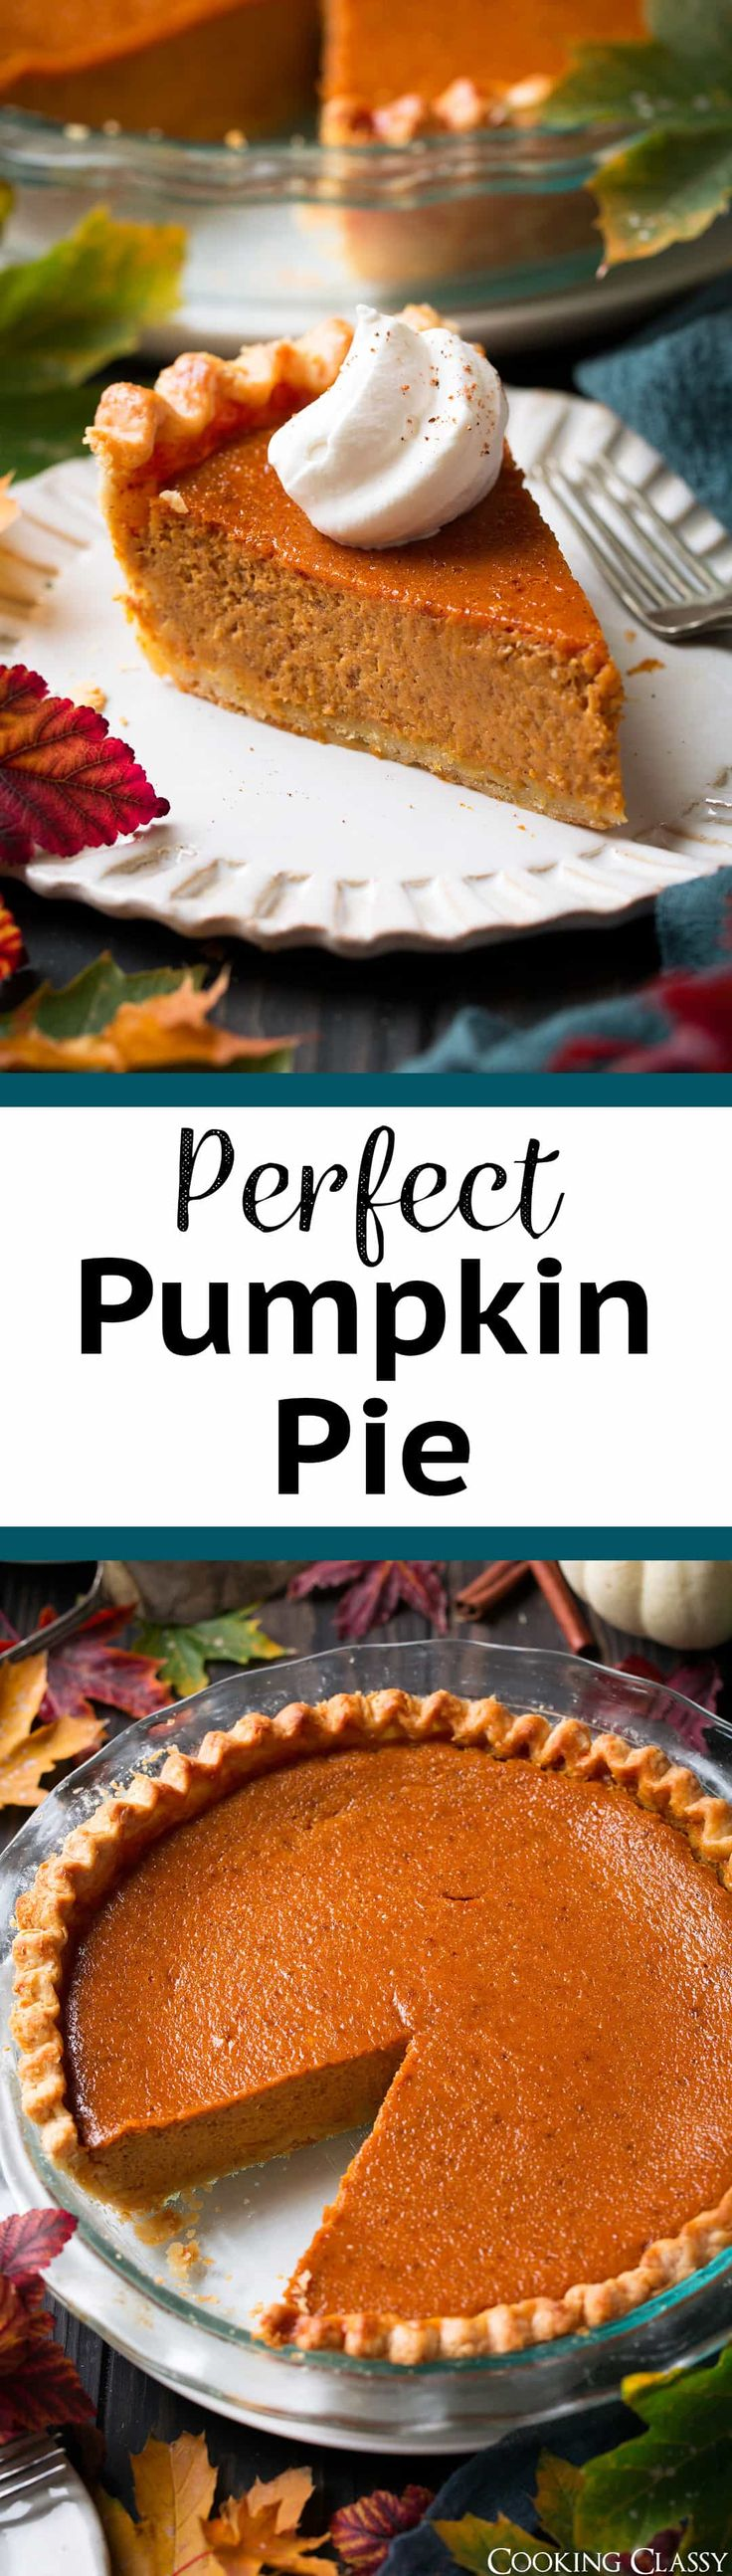 The Perfect Pumpkin Pie - this really is a perfect pumpkin pie! Make this one if you are looking to impress! Love all the little details that really make a difference. #pumpkin #pumpkinpie #pie #thanksgiving #recipe  via @cookingclassy